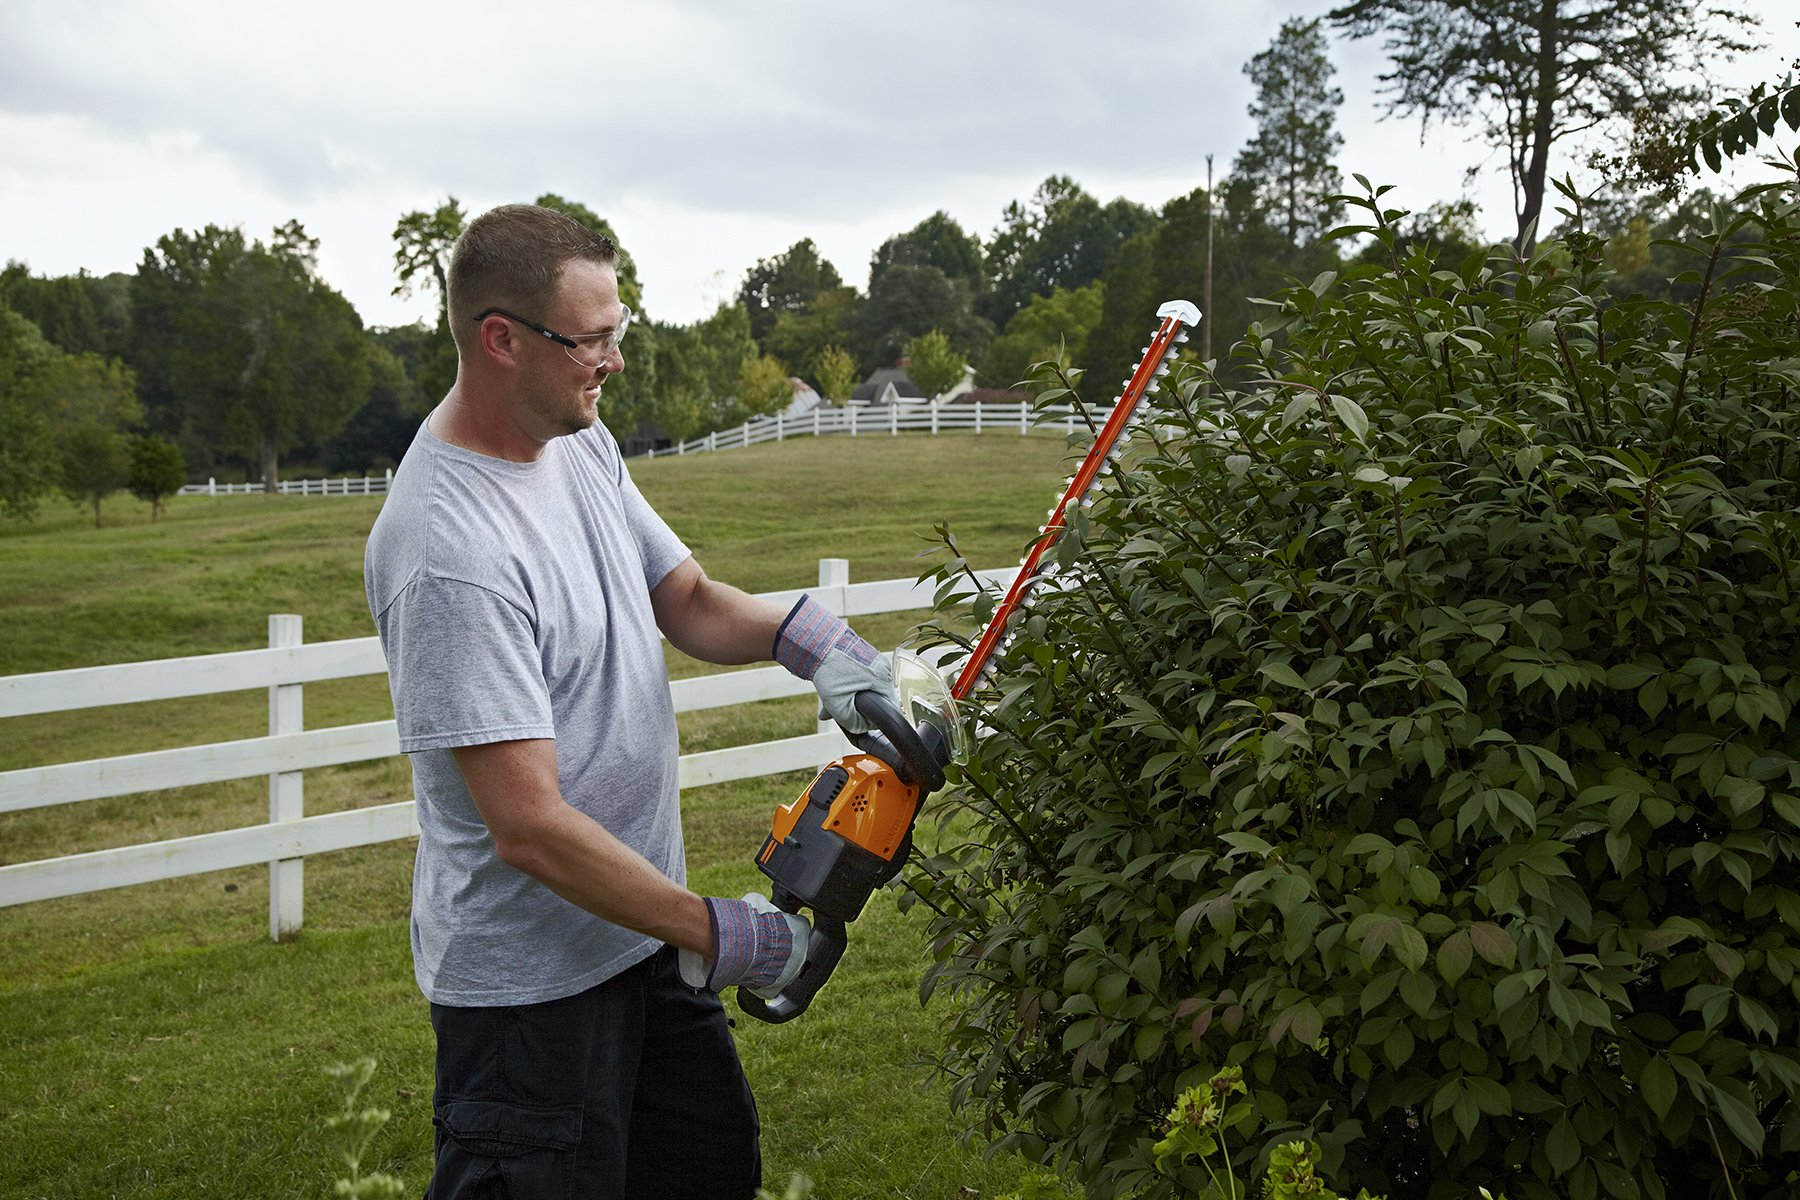 WORX WG291 56V Lithium-Ion Cordless Hedge Trimmer, 24-Inch, Battery and Charger Included by Worx (Image #6)